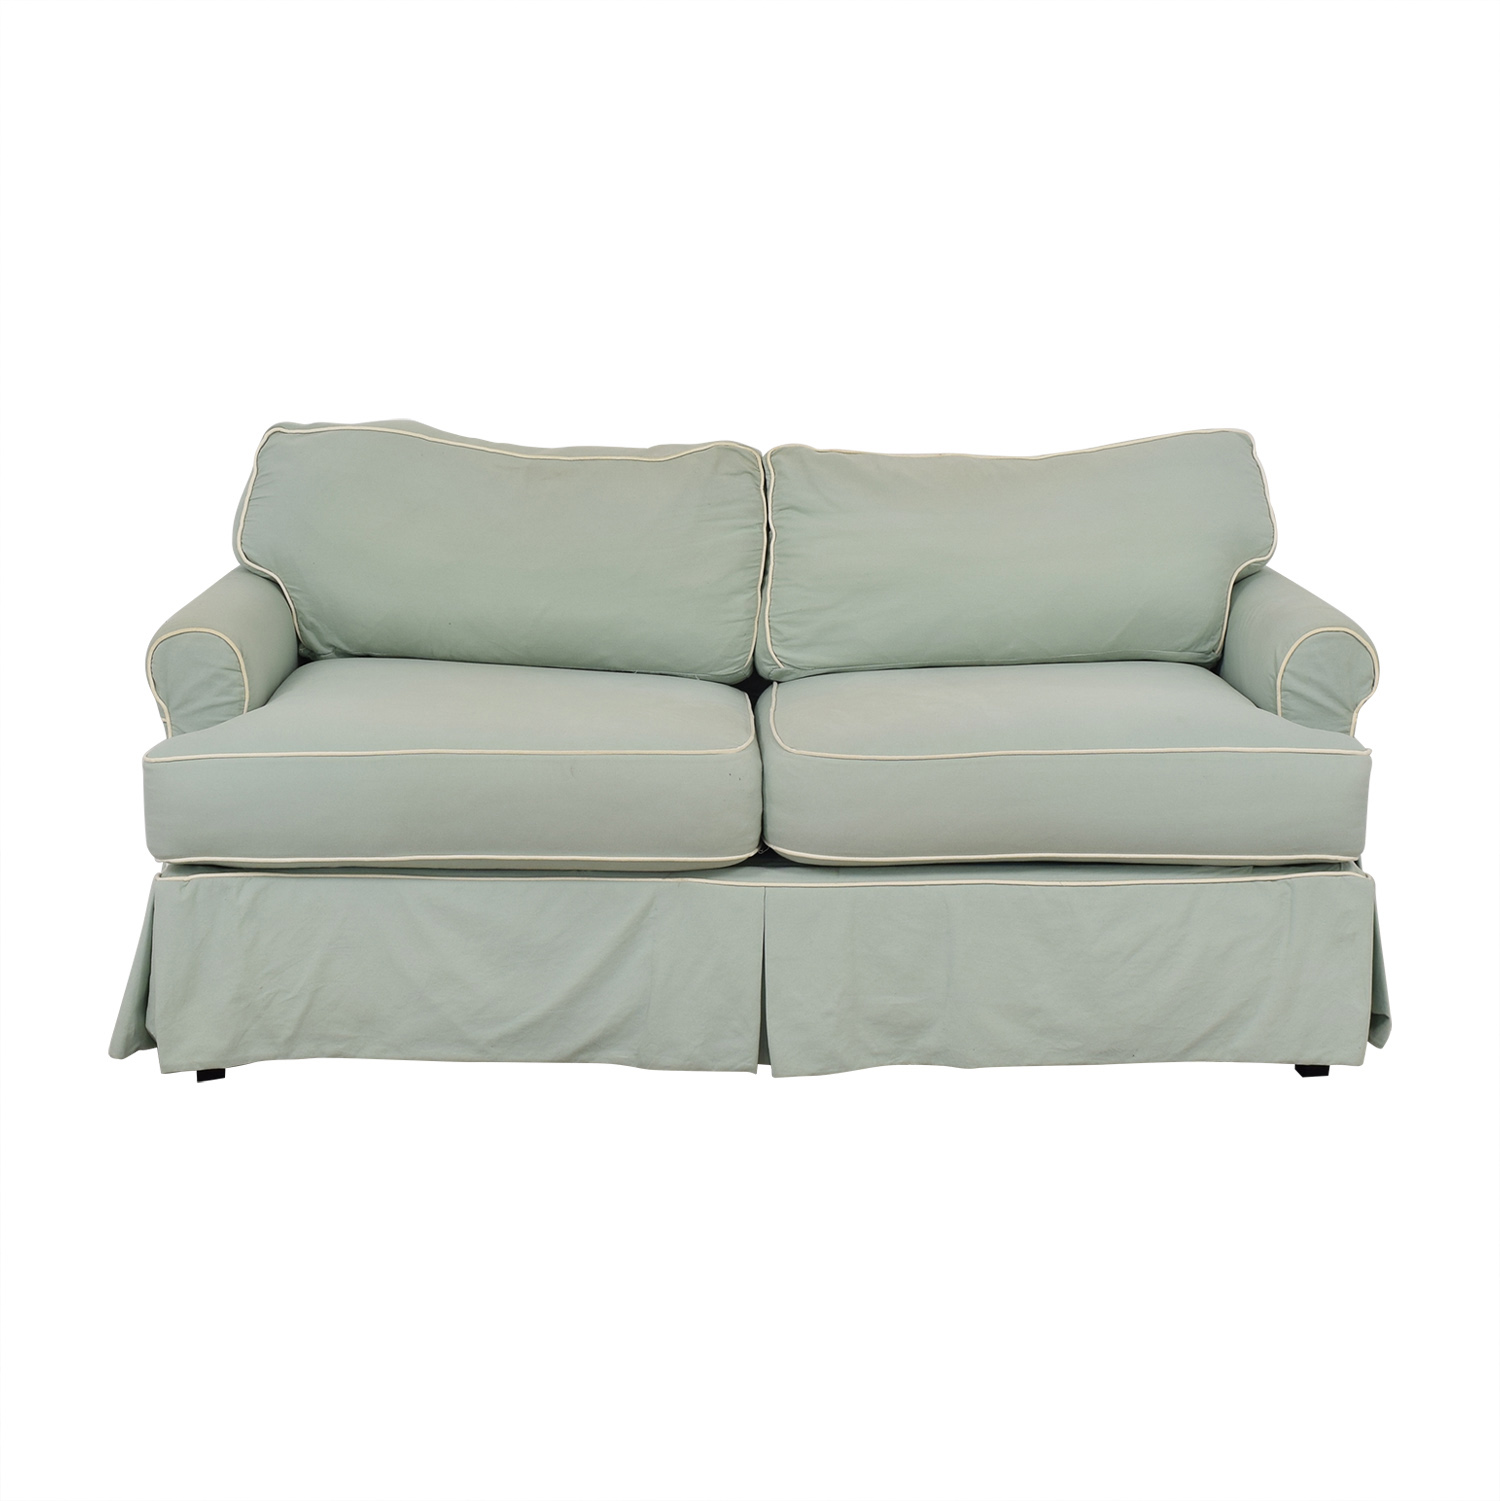 Hildreth's Two Cushion Sofa / Sofas